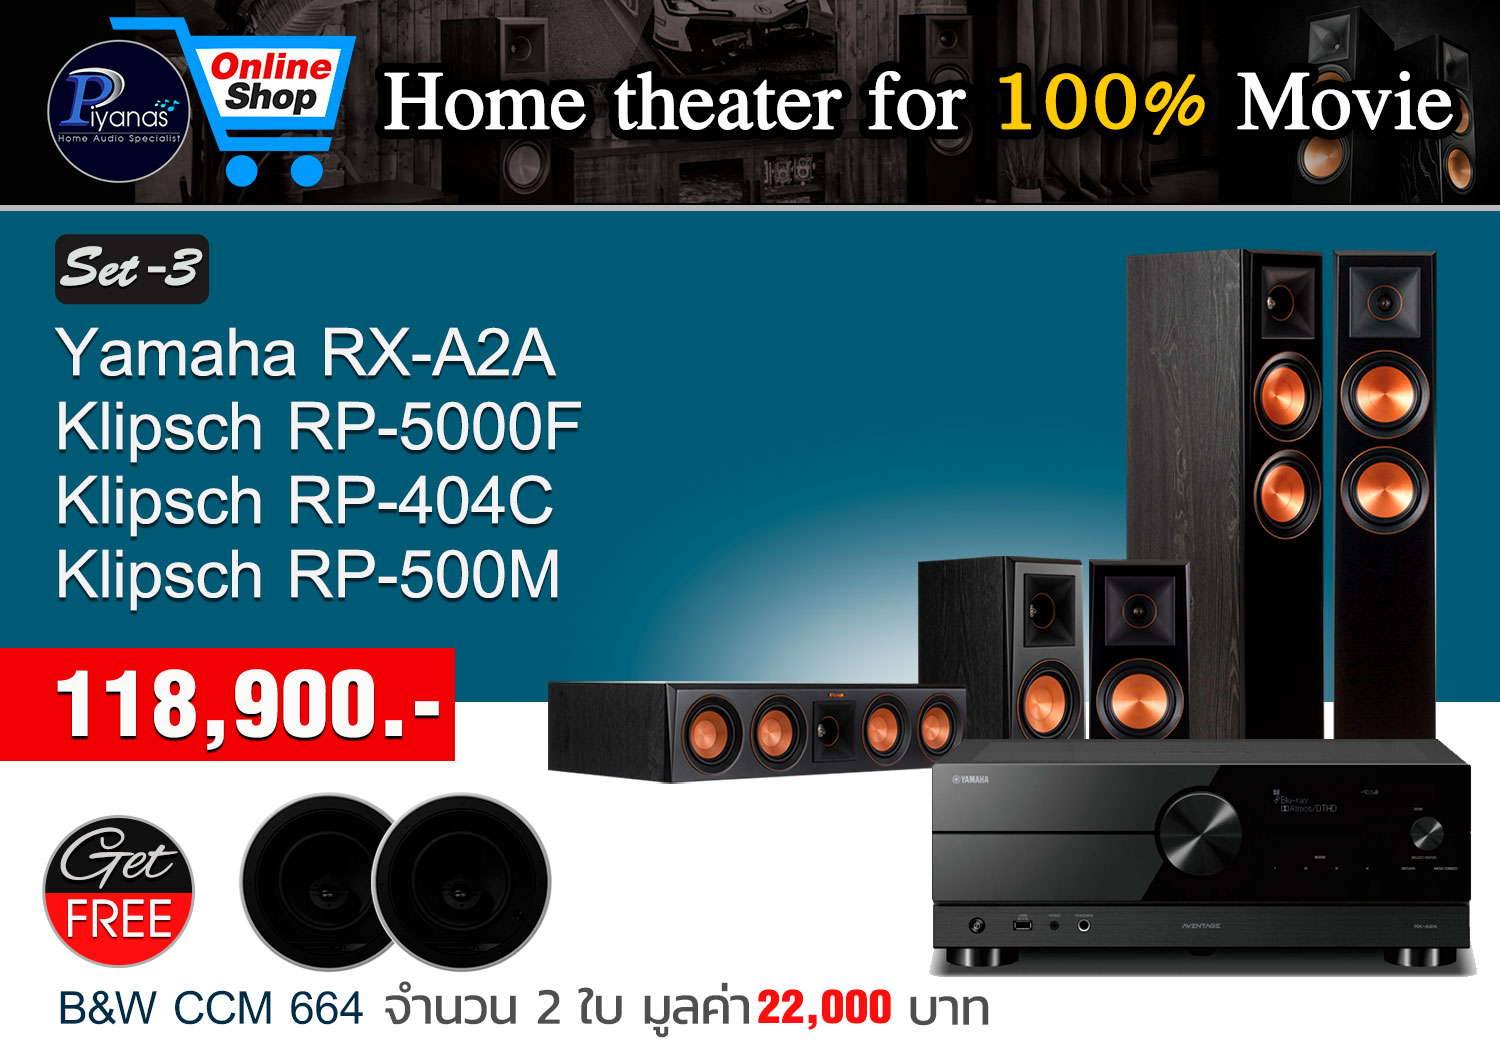 Home theater for 100% Movie # 3